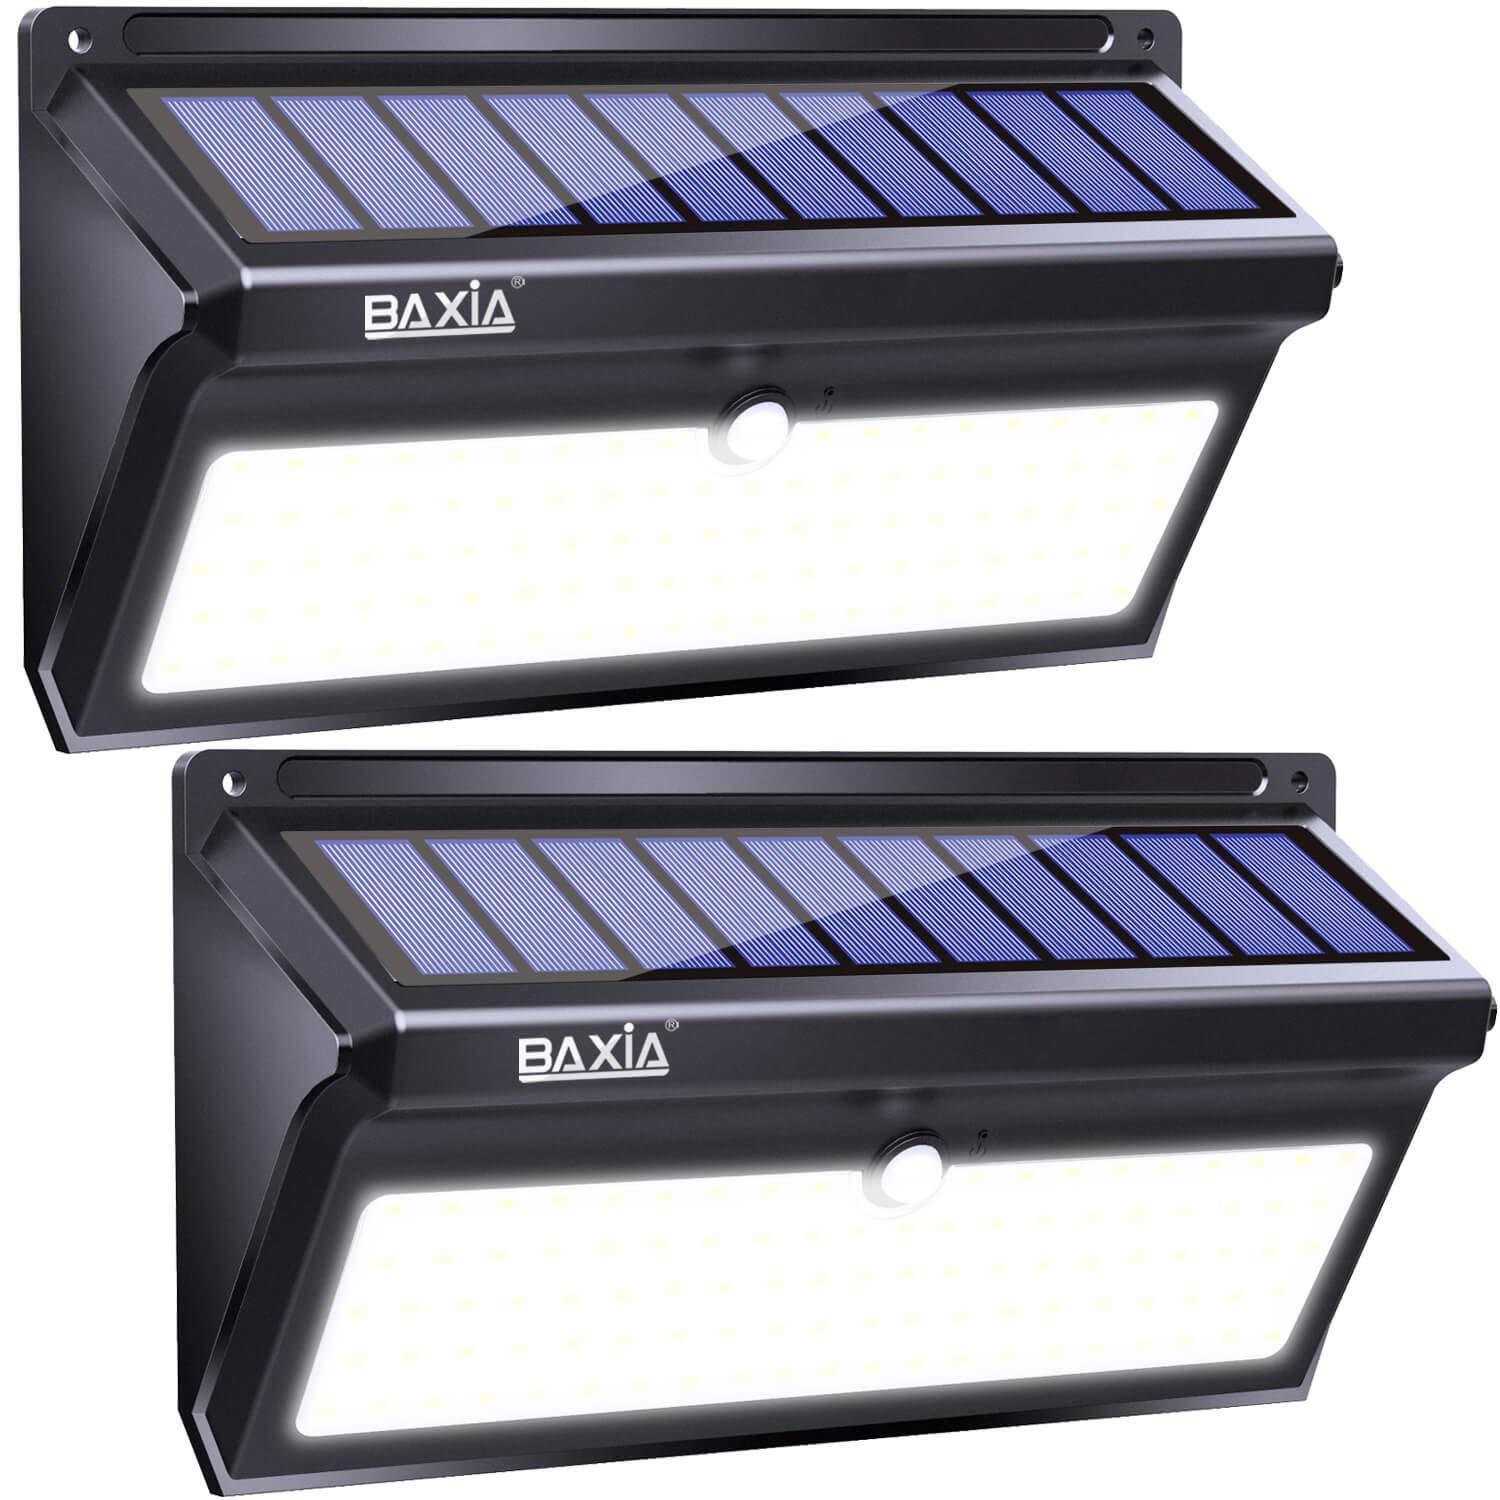 BAXIA TECHNOLOGY Solar Lights Outdoor, 100 LED Solar Motion Sensor Lights With Wide Angle, Upgraded Waterproof Super Bright Security Solar Wall Lights for Garden, Fence, Front Door, Yard, 2 Pack